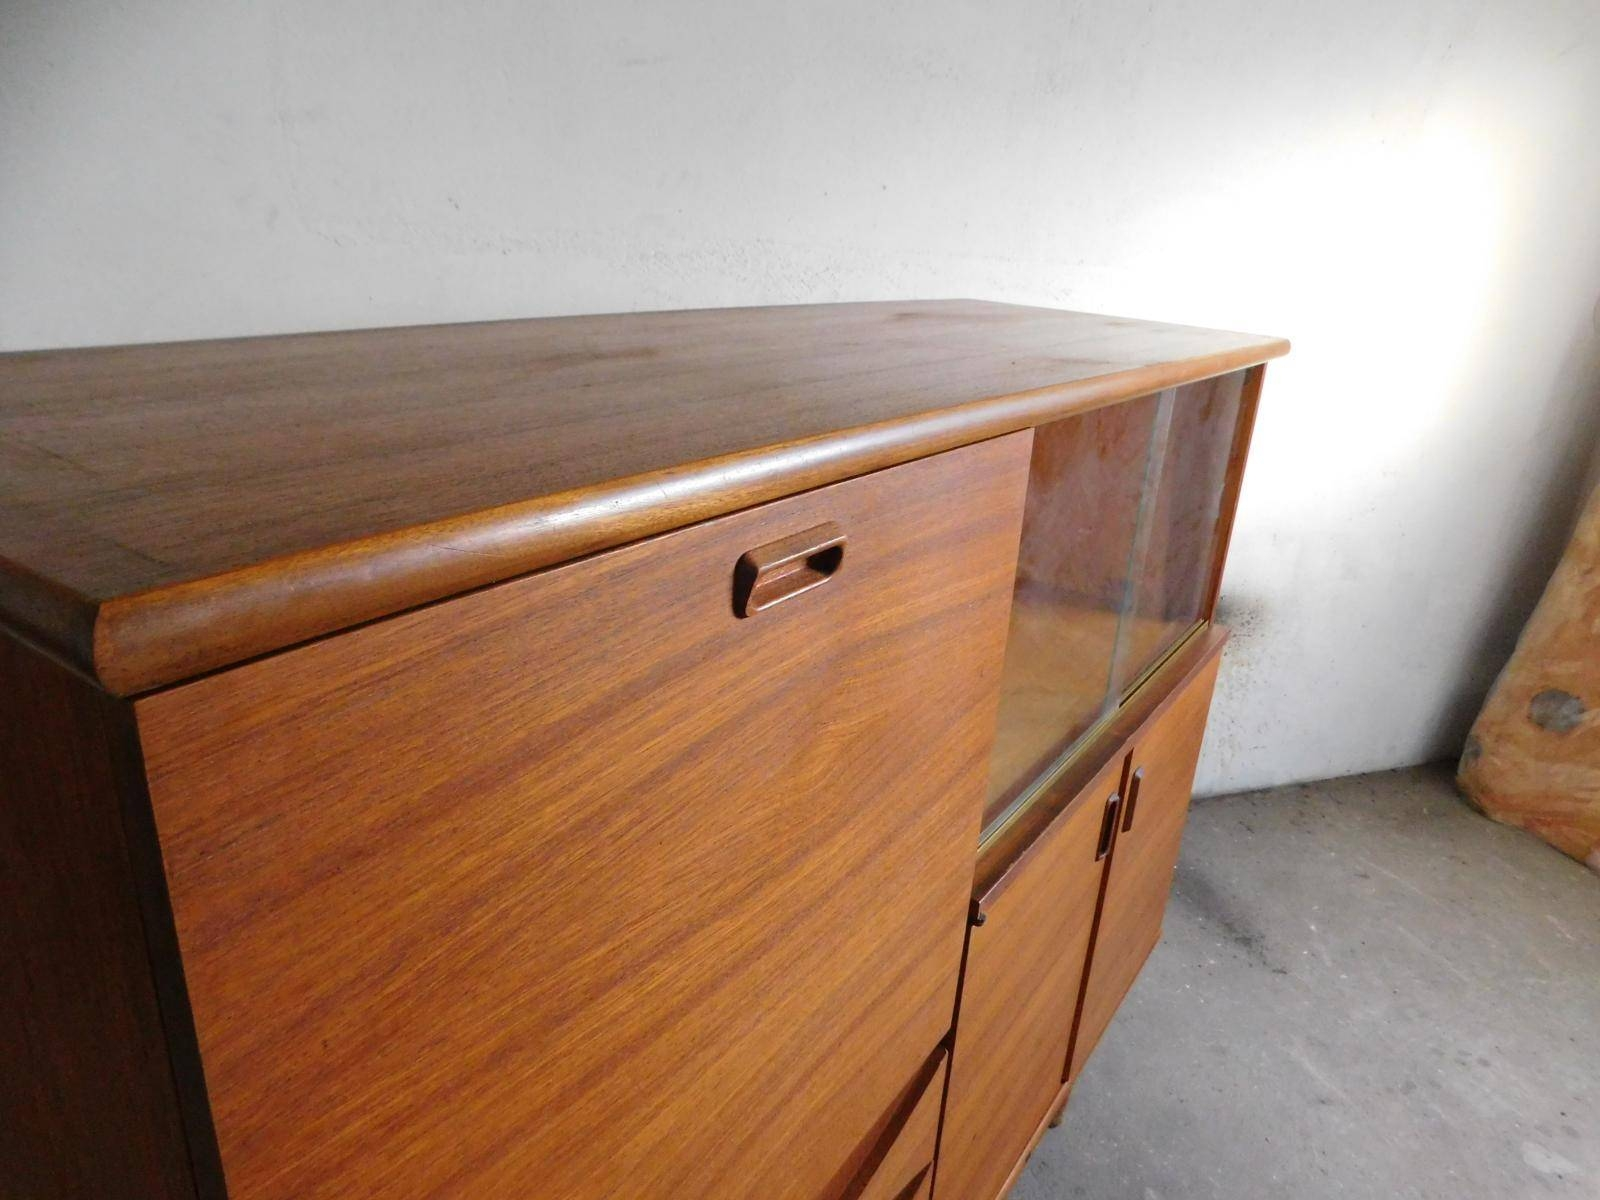 Large Teak Sideboard With Sliding Glass Doors, 1960S For Sale At within Sideboards With Glass Doors And Drawers (Image 8 of 15)